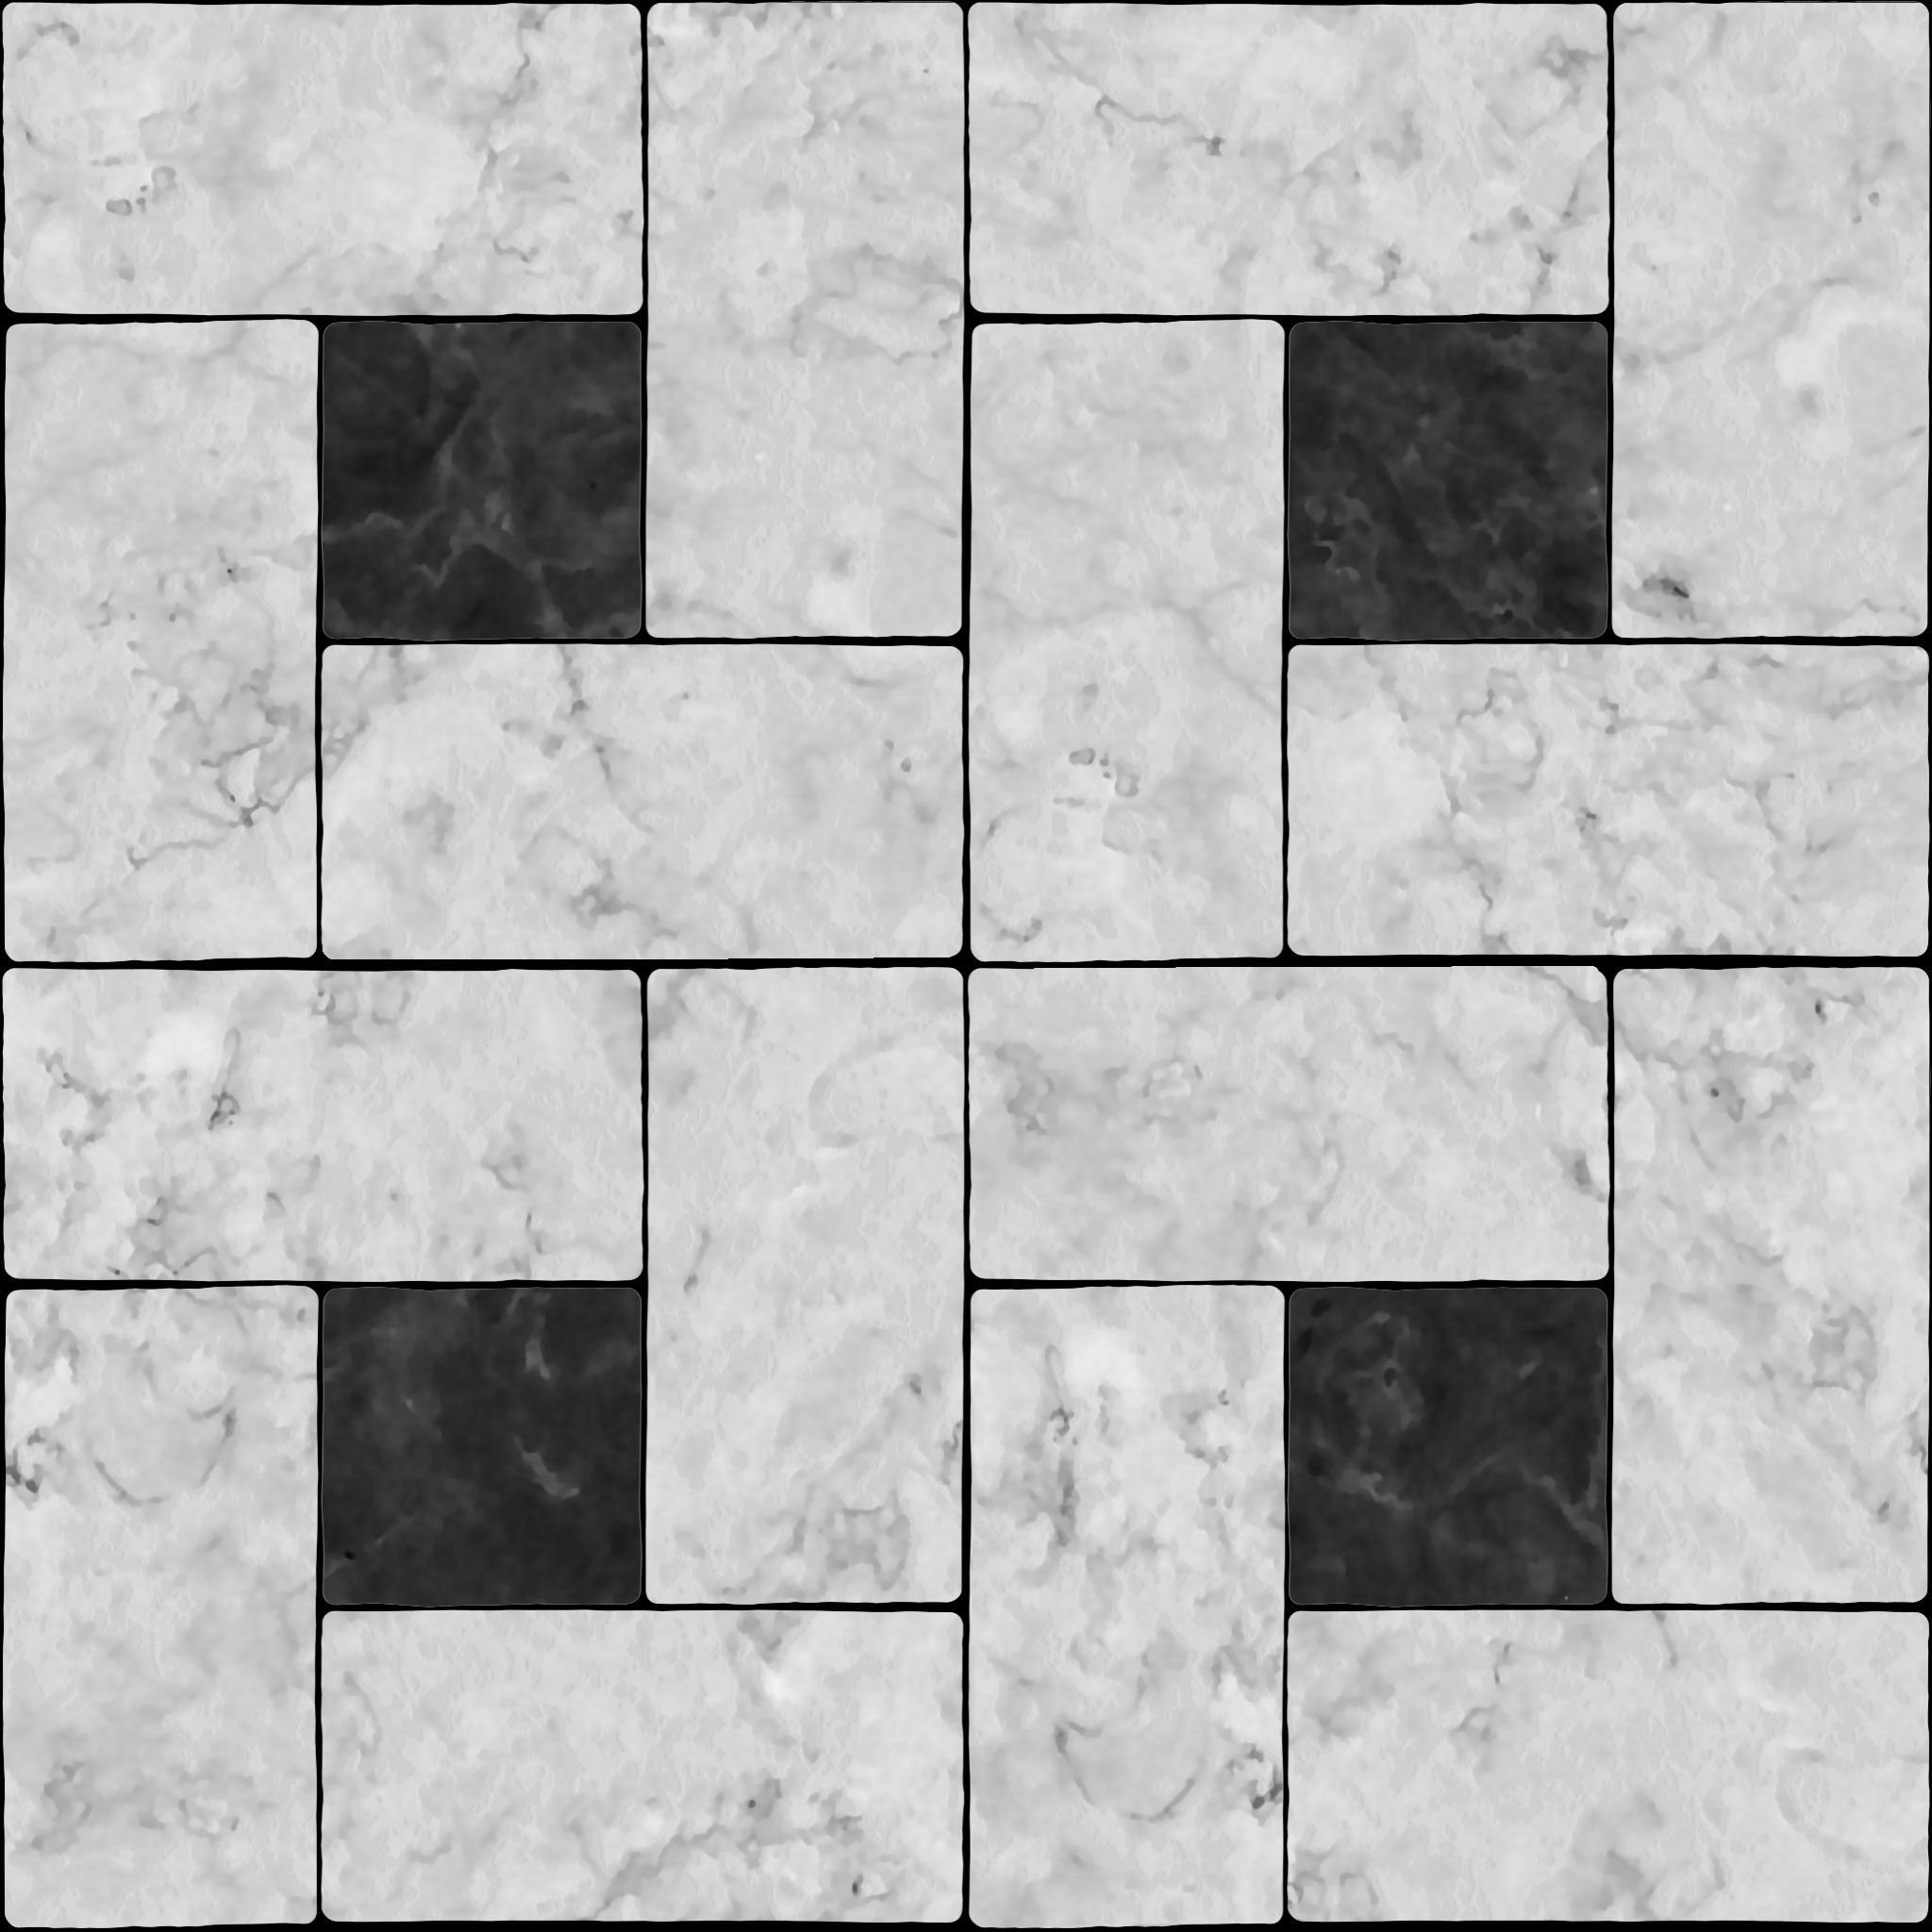 Tile Flooring Texture 2048 X 2048 Resolution Ideas For The House Pinterest Tile Patterns